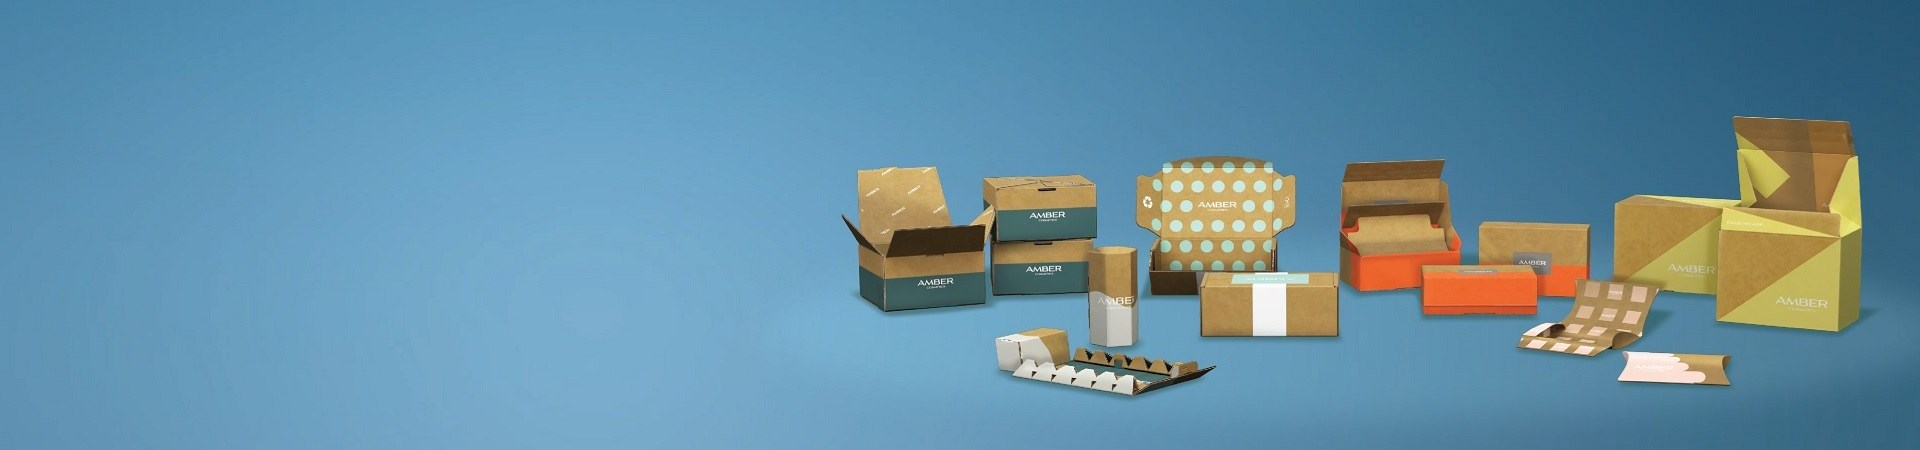 health and beauty ecommerce packaging